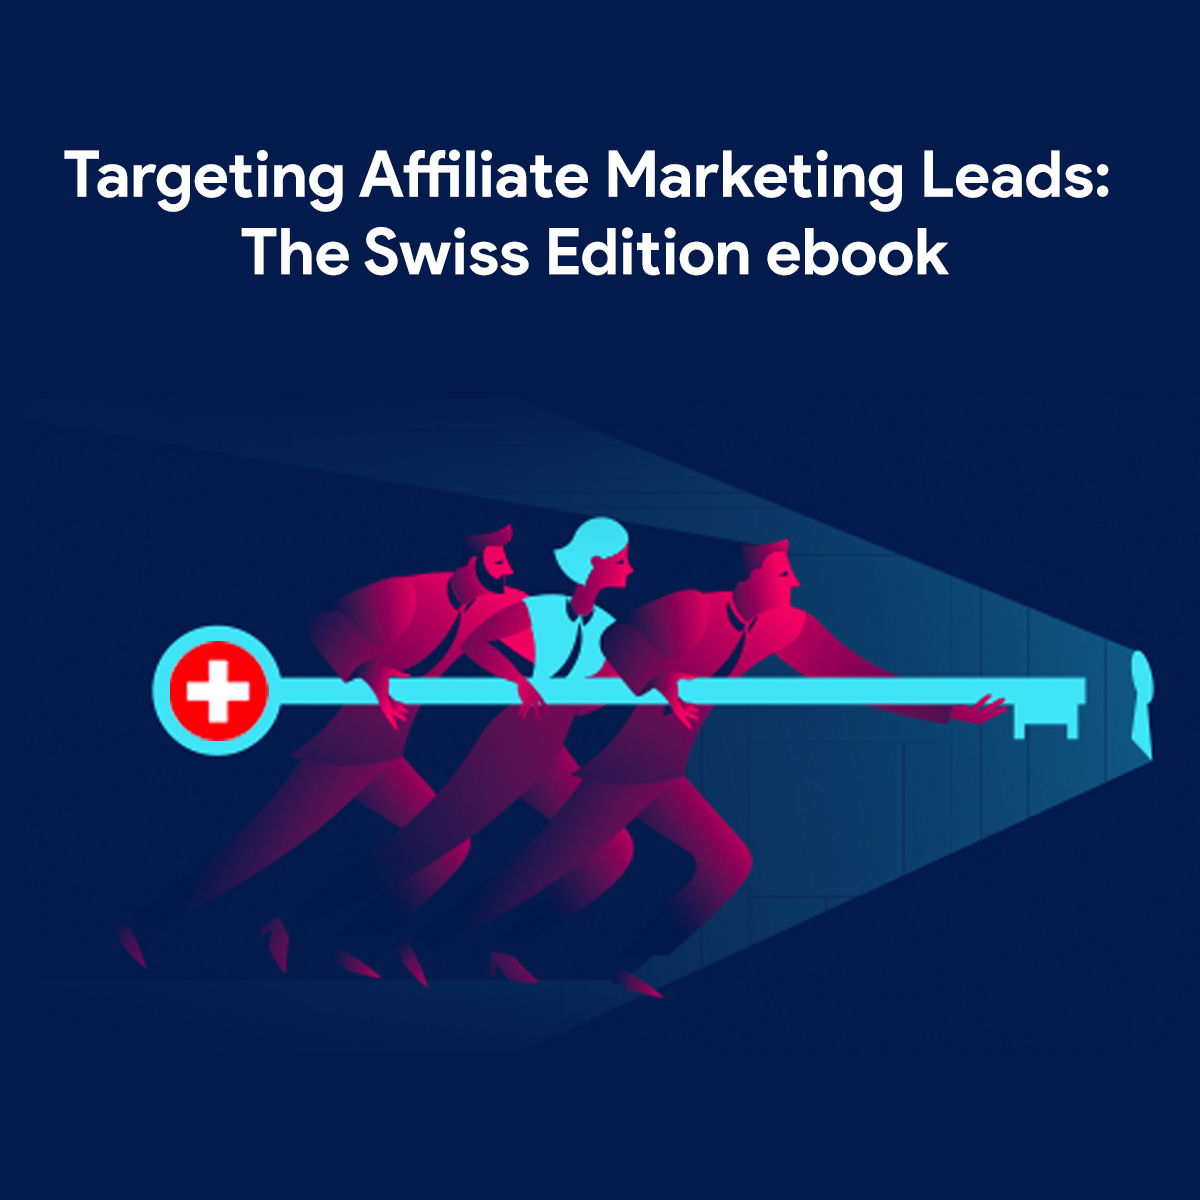 eBook - Targeting Affiliate Marketing Leads: The Swiss Edition